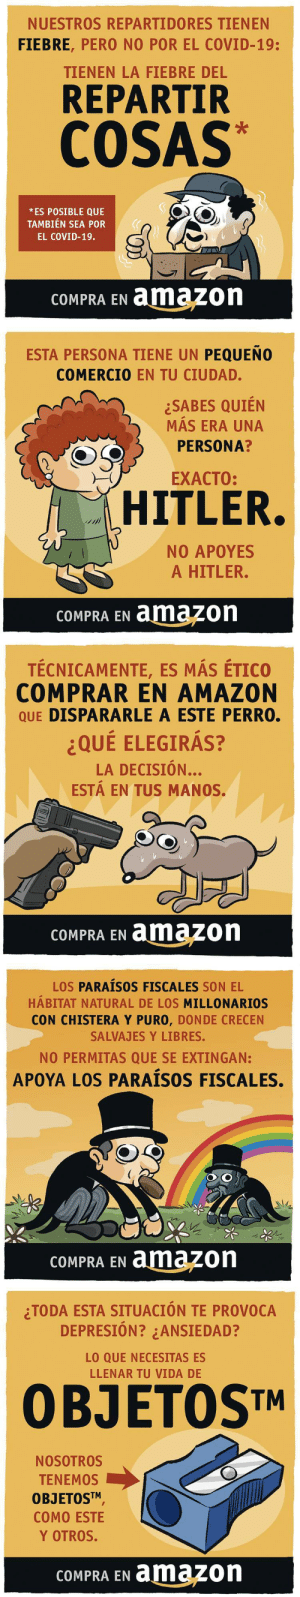 miniyo:  COMPRAR EN AMAZON vs COMPRAR EN COMERCIO LOCAL` [ver todas las viñetas aquí] Rubén Fernández, en El Jueves [web] https://www.eljueves.es/ [twitter] @eljueves [facebook] https://www.facebook.com/eljueves/ [twitter] @thefdez   [tumblr] https://thefdez.tumblr.com/ : miniyo:  COMPRAR EN AMAZON vs COMPRAR EN COMERCIO LOCAL` [ver todas las viñetas aquí] Rubén Fernández, en El Jueves [web] https://www.eljueves.es/ [twitter] @eljueves [facebook] https://www.facebook.com/eljueves/ [twitter] @thefdez   [tumblr] https://thefdez.tumblr.com/